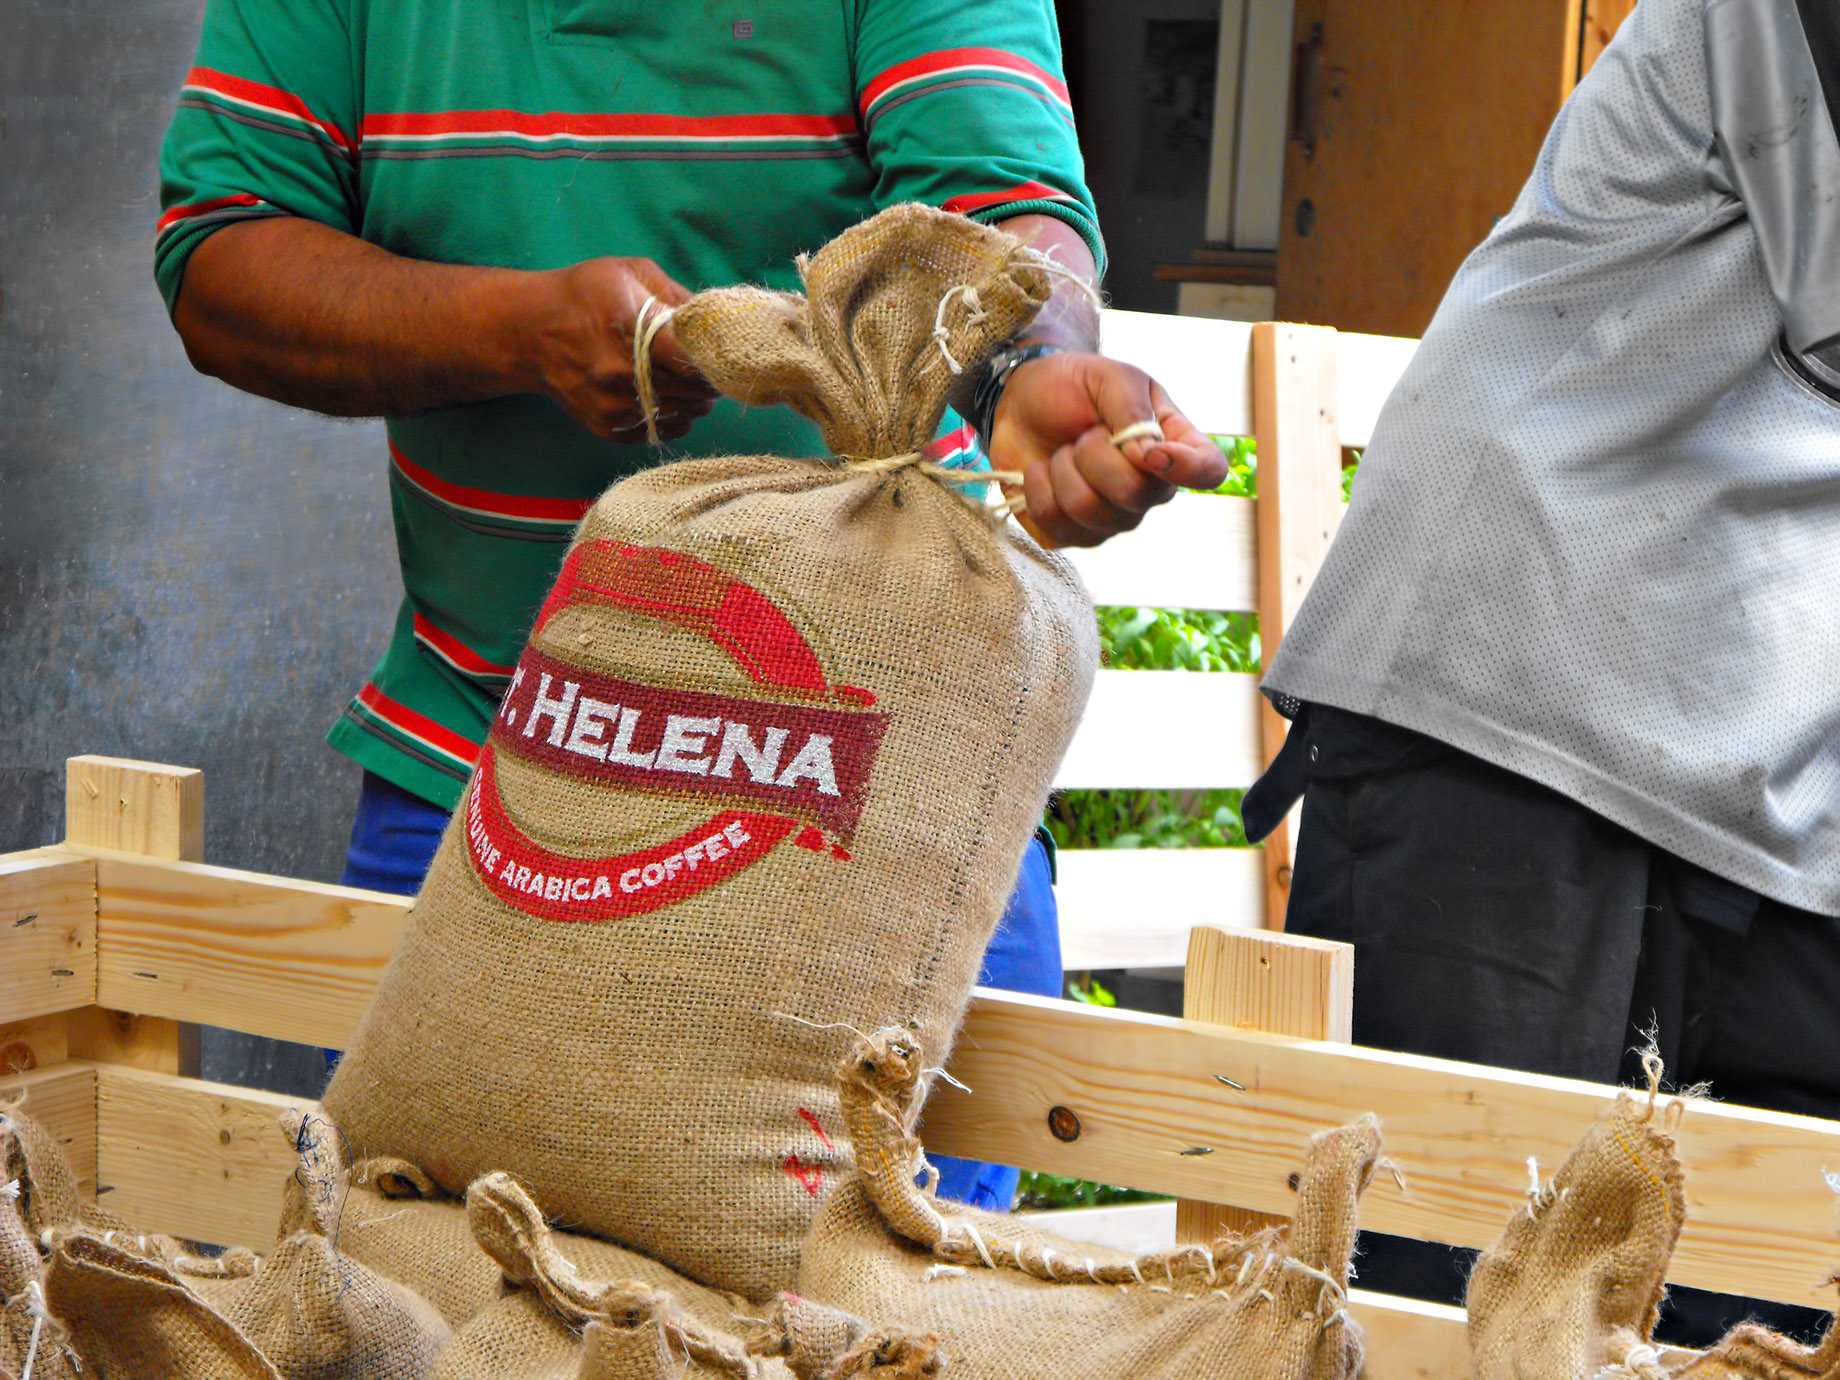 St. Helena Coffee - South Atlantic - One of the Most Expensive Coffees in the World